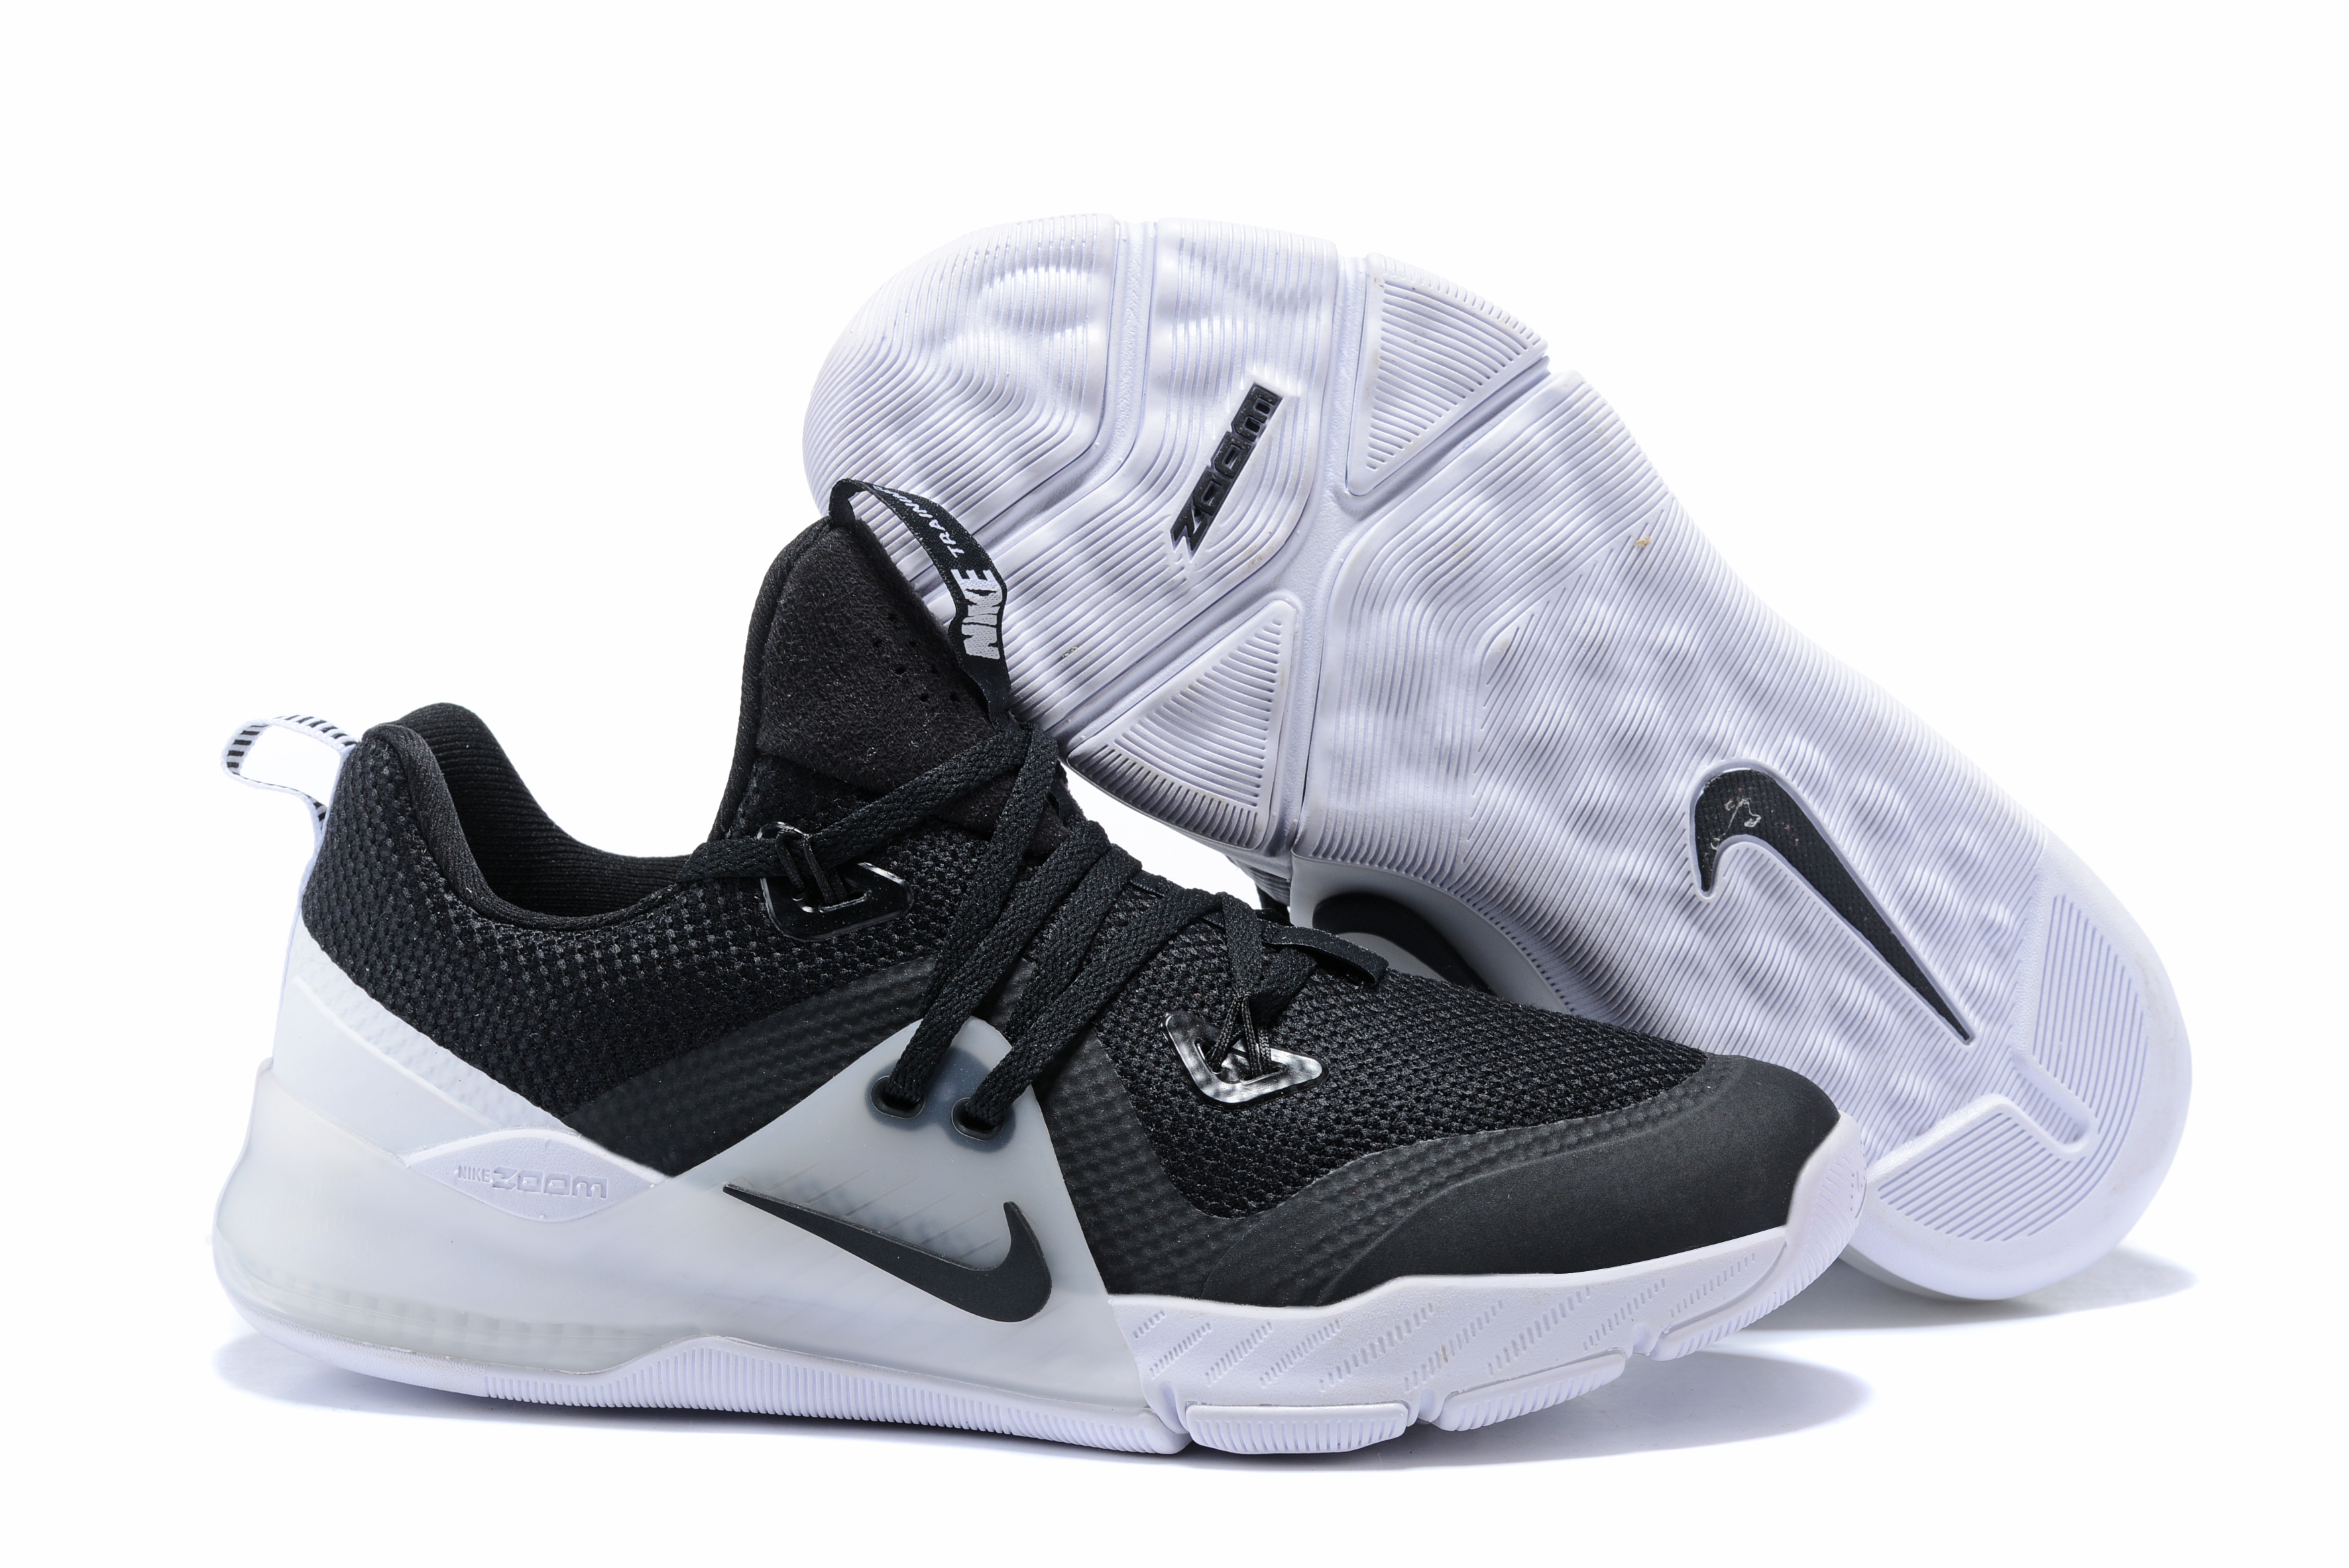 Nike Zoom II Roayl Black White Basketball Shoes